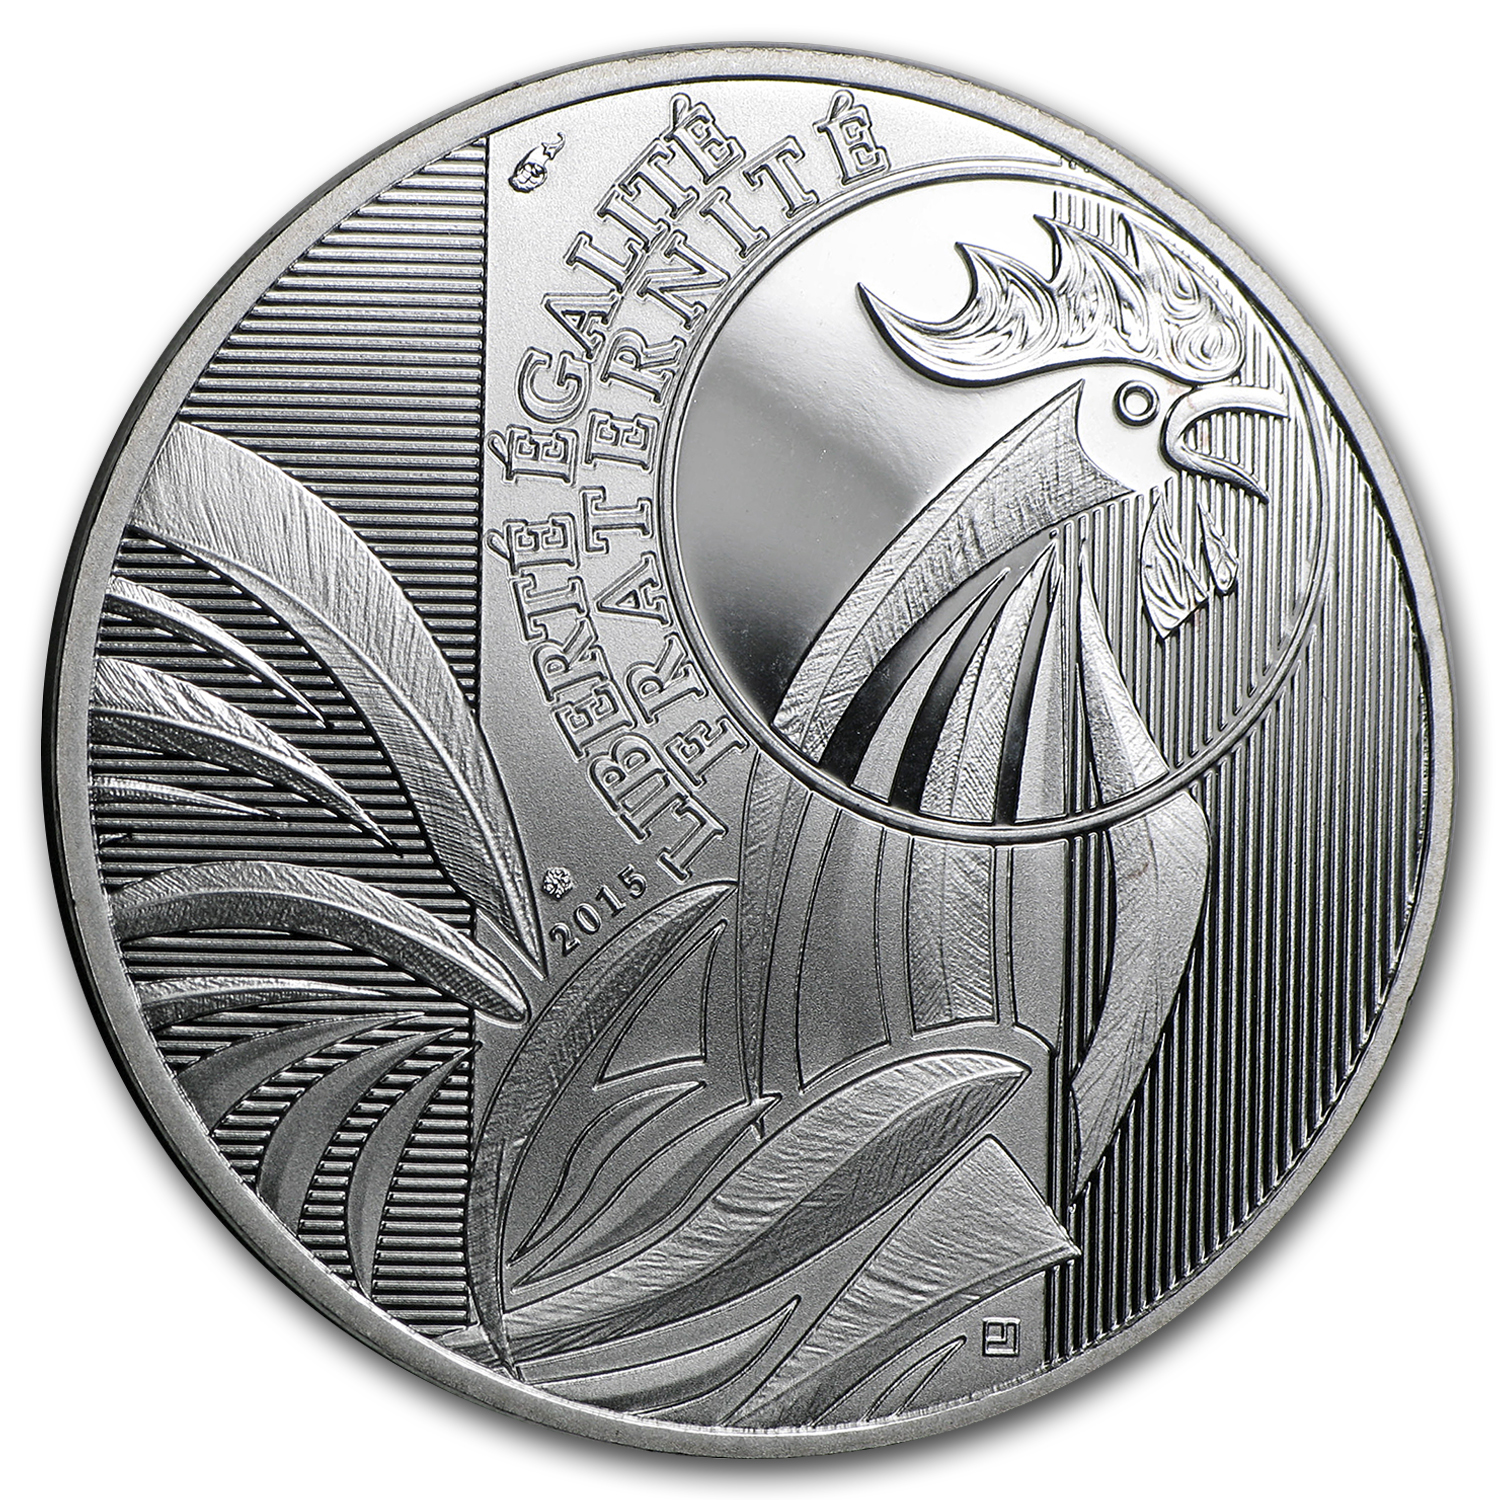 2015 France Proof Silver €10 The Rooster